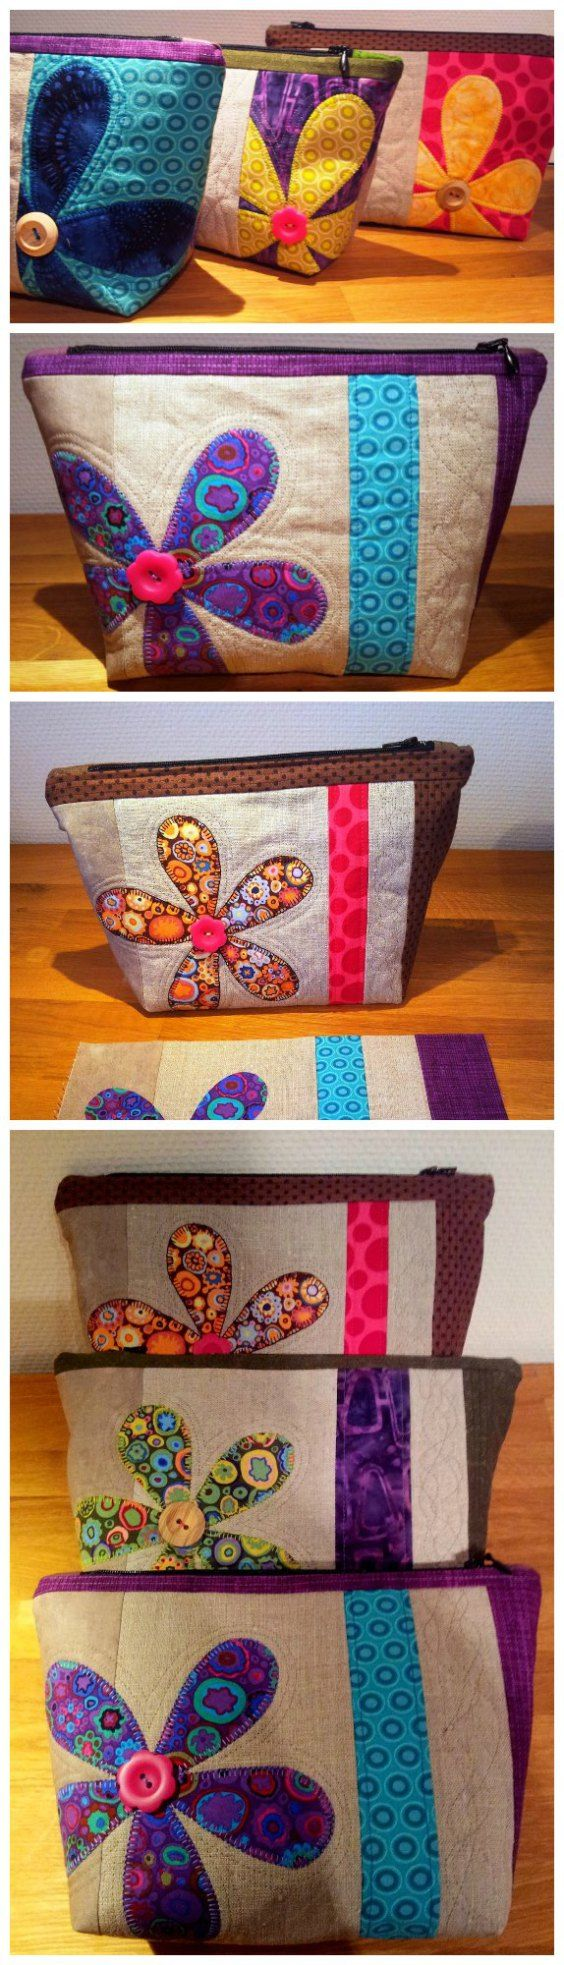 Quilted floral cosmetics bag free (With images